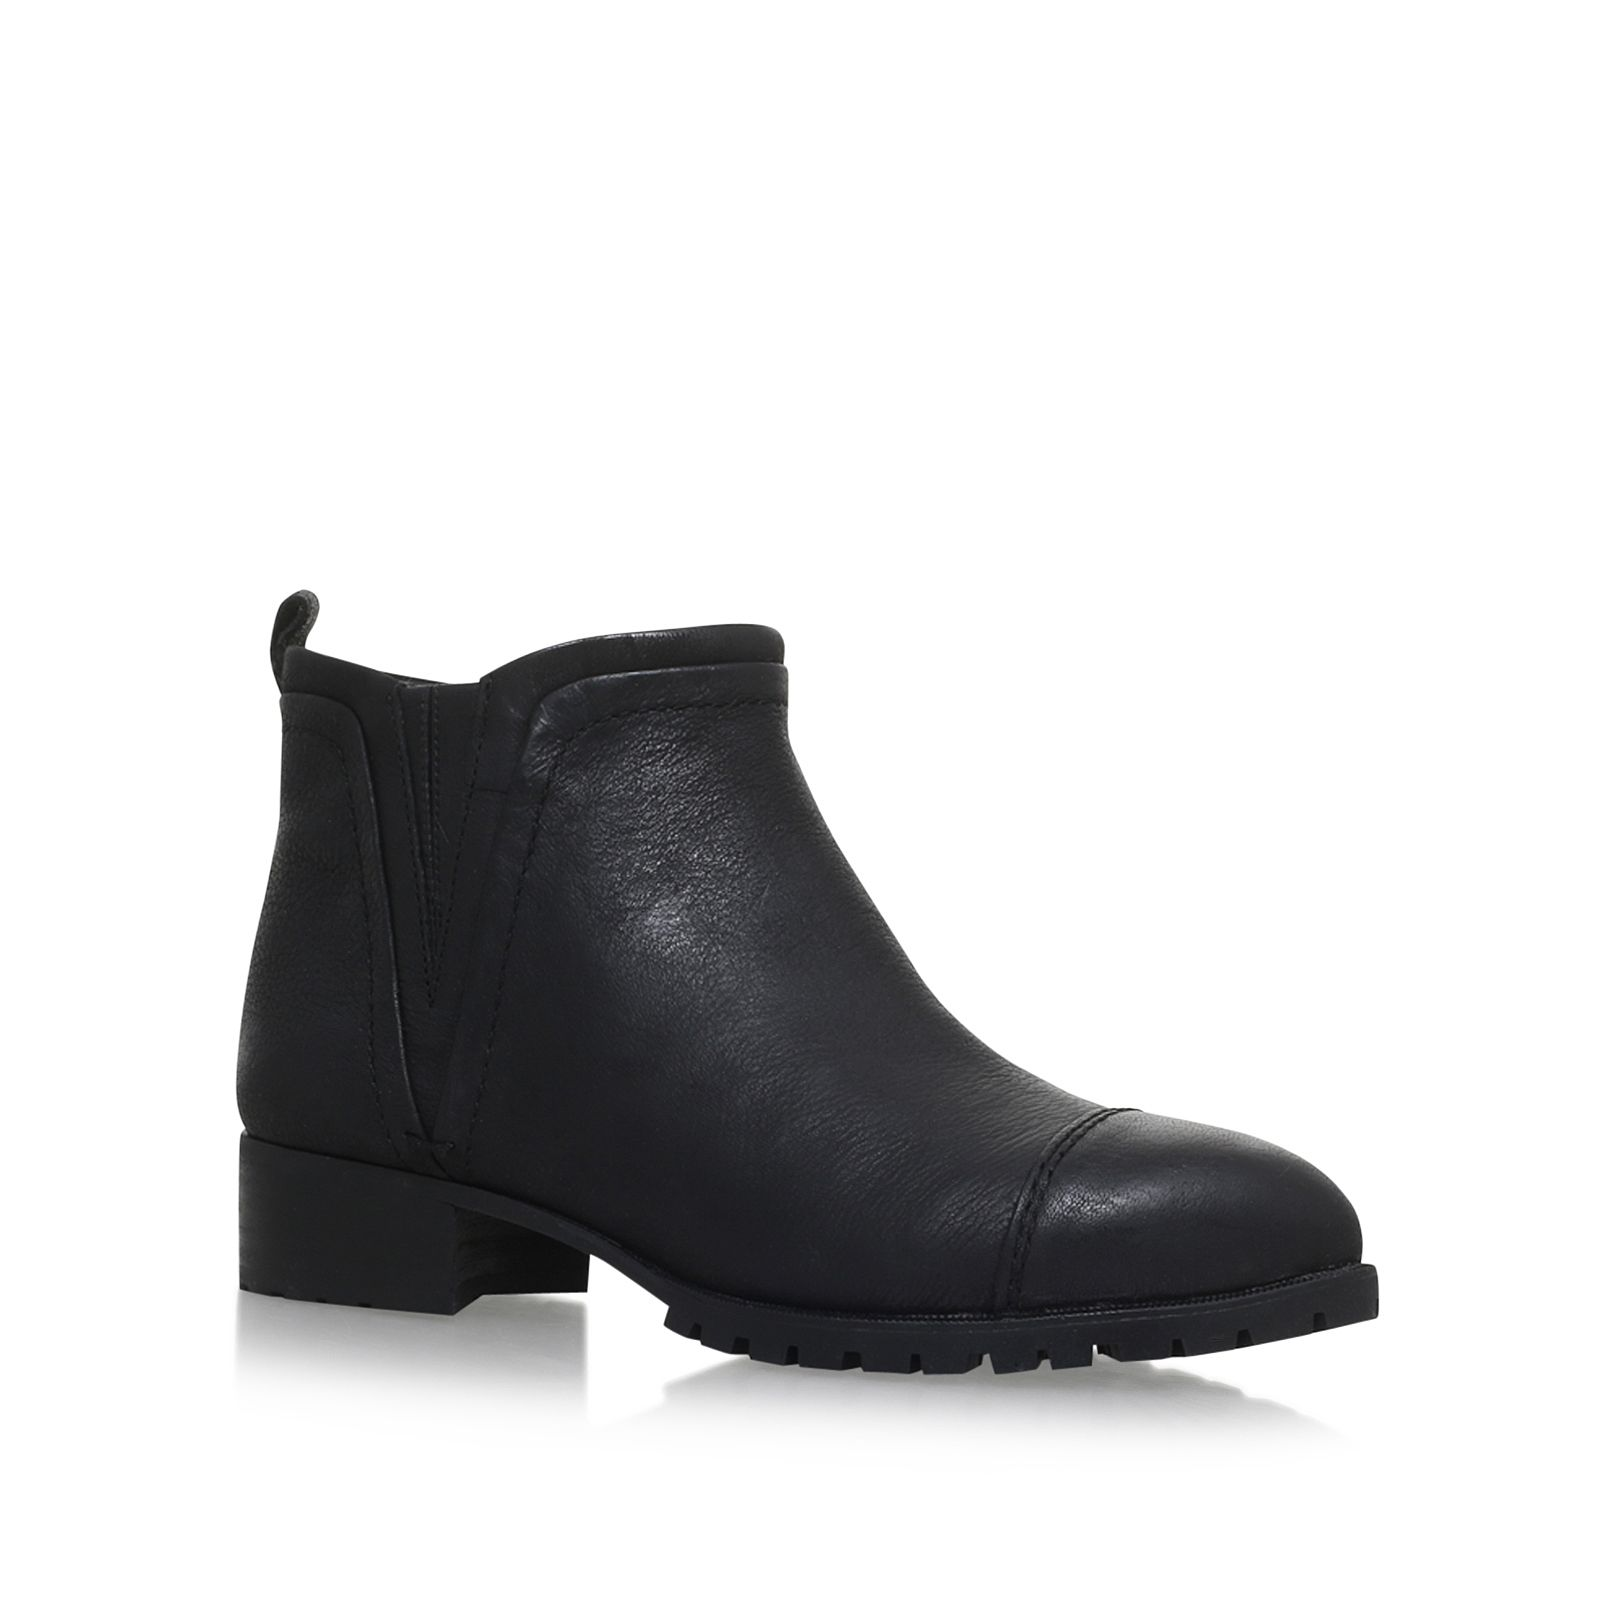 Nine West Layitout flat ankle boots Black